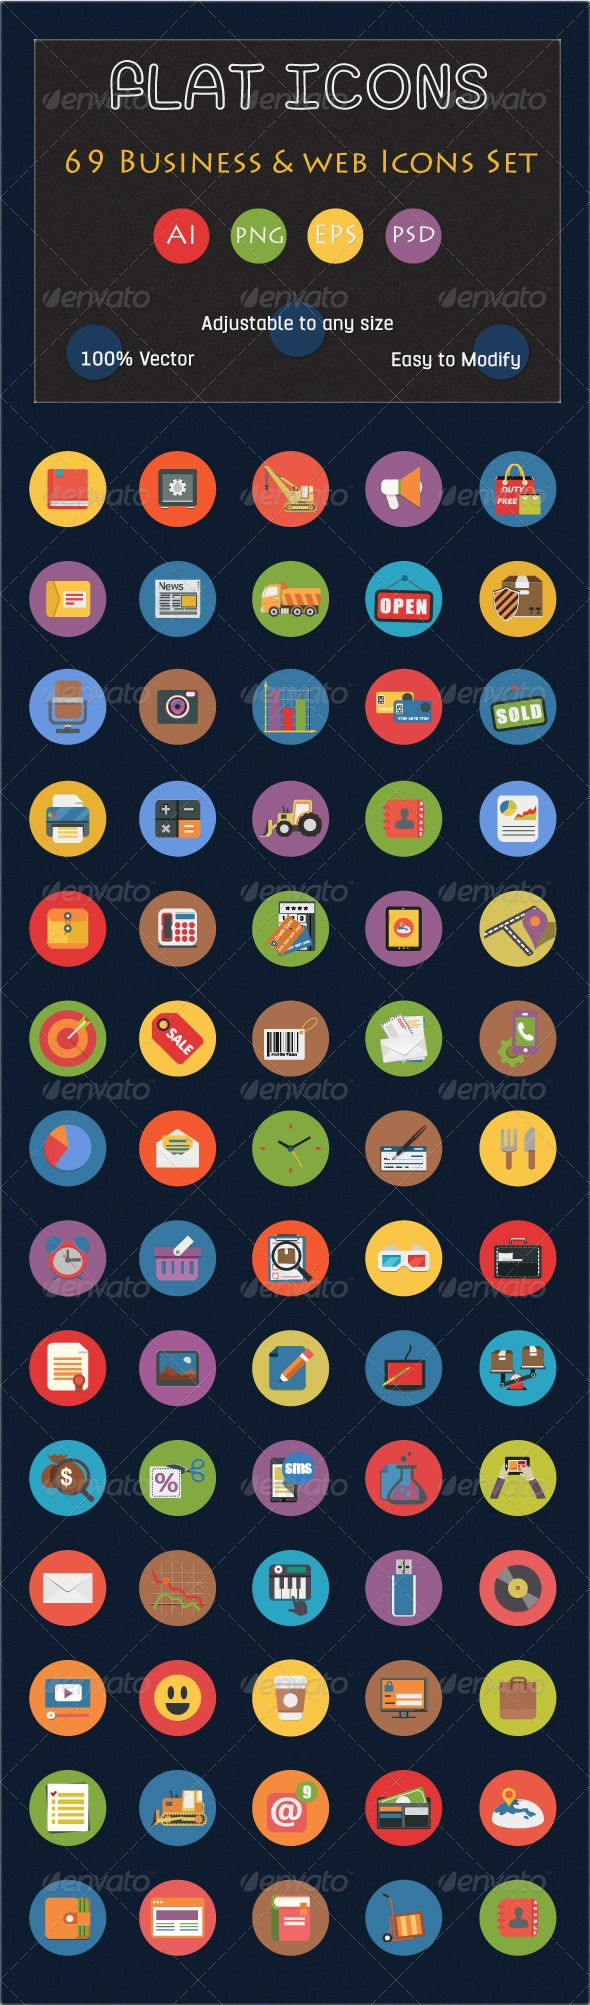 Keywords: analytics, application, business, business icons, cloud, coding, communication, computer, concept, connection, data, flat icons, icon, interface, internet, management, mobile, network, office icons, page, research, search engine, seo, server, service, vector flat icons, web, web icons, webpage, wifi. Download Link  http://graphicriver.net/item/69-flat-icons-set-business-and-web-services-icon/6556184